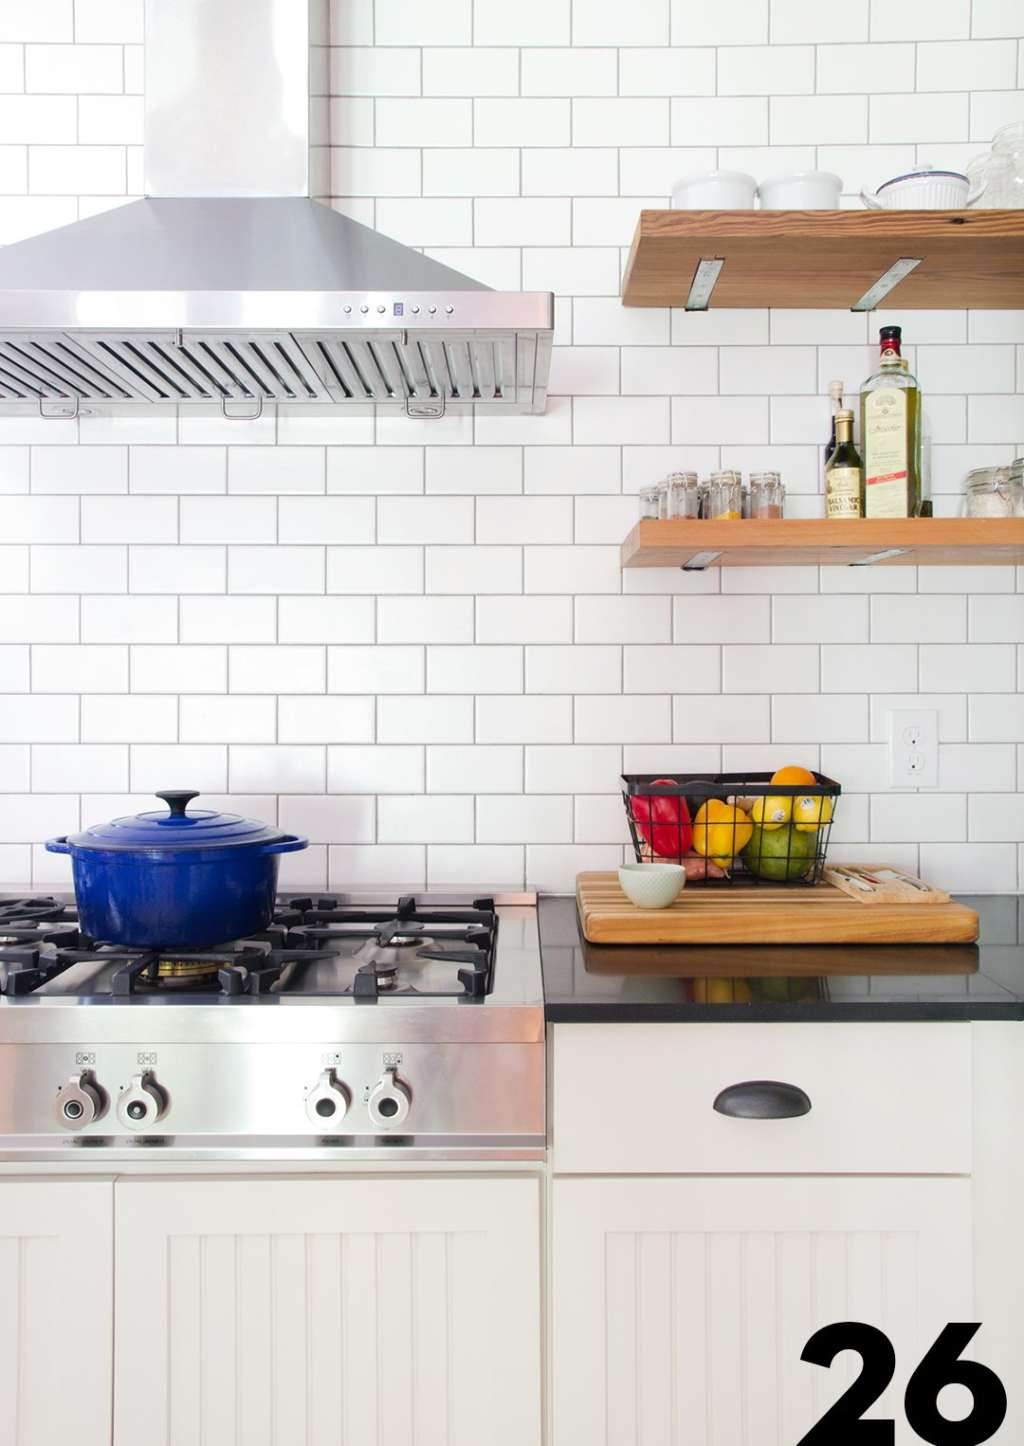 Danielle and Austin's Kitchen & Garage Remodel: What It Really Cost - A Budget Breakdown